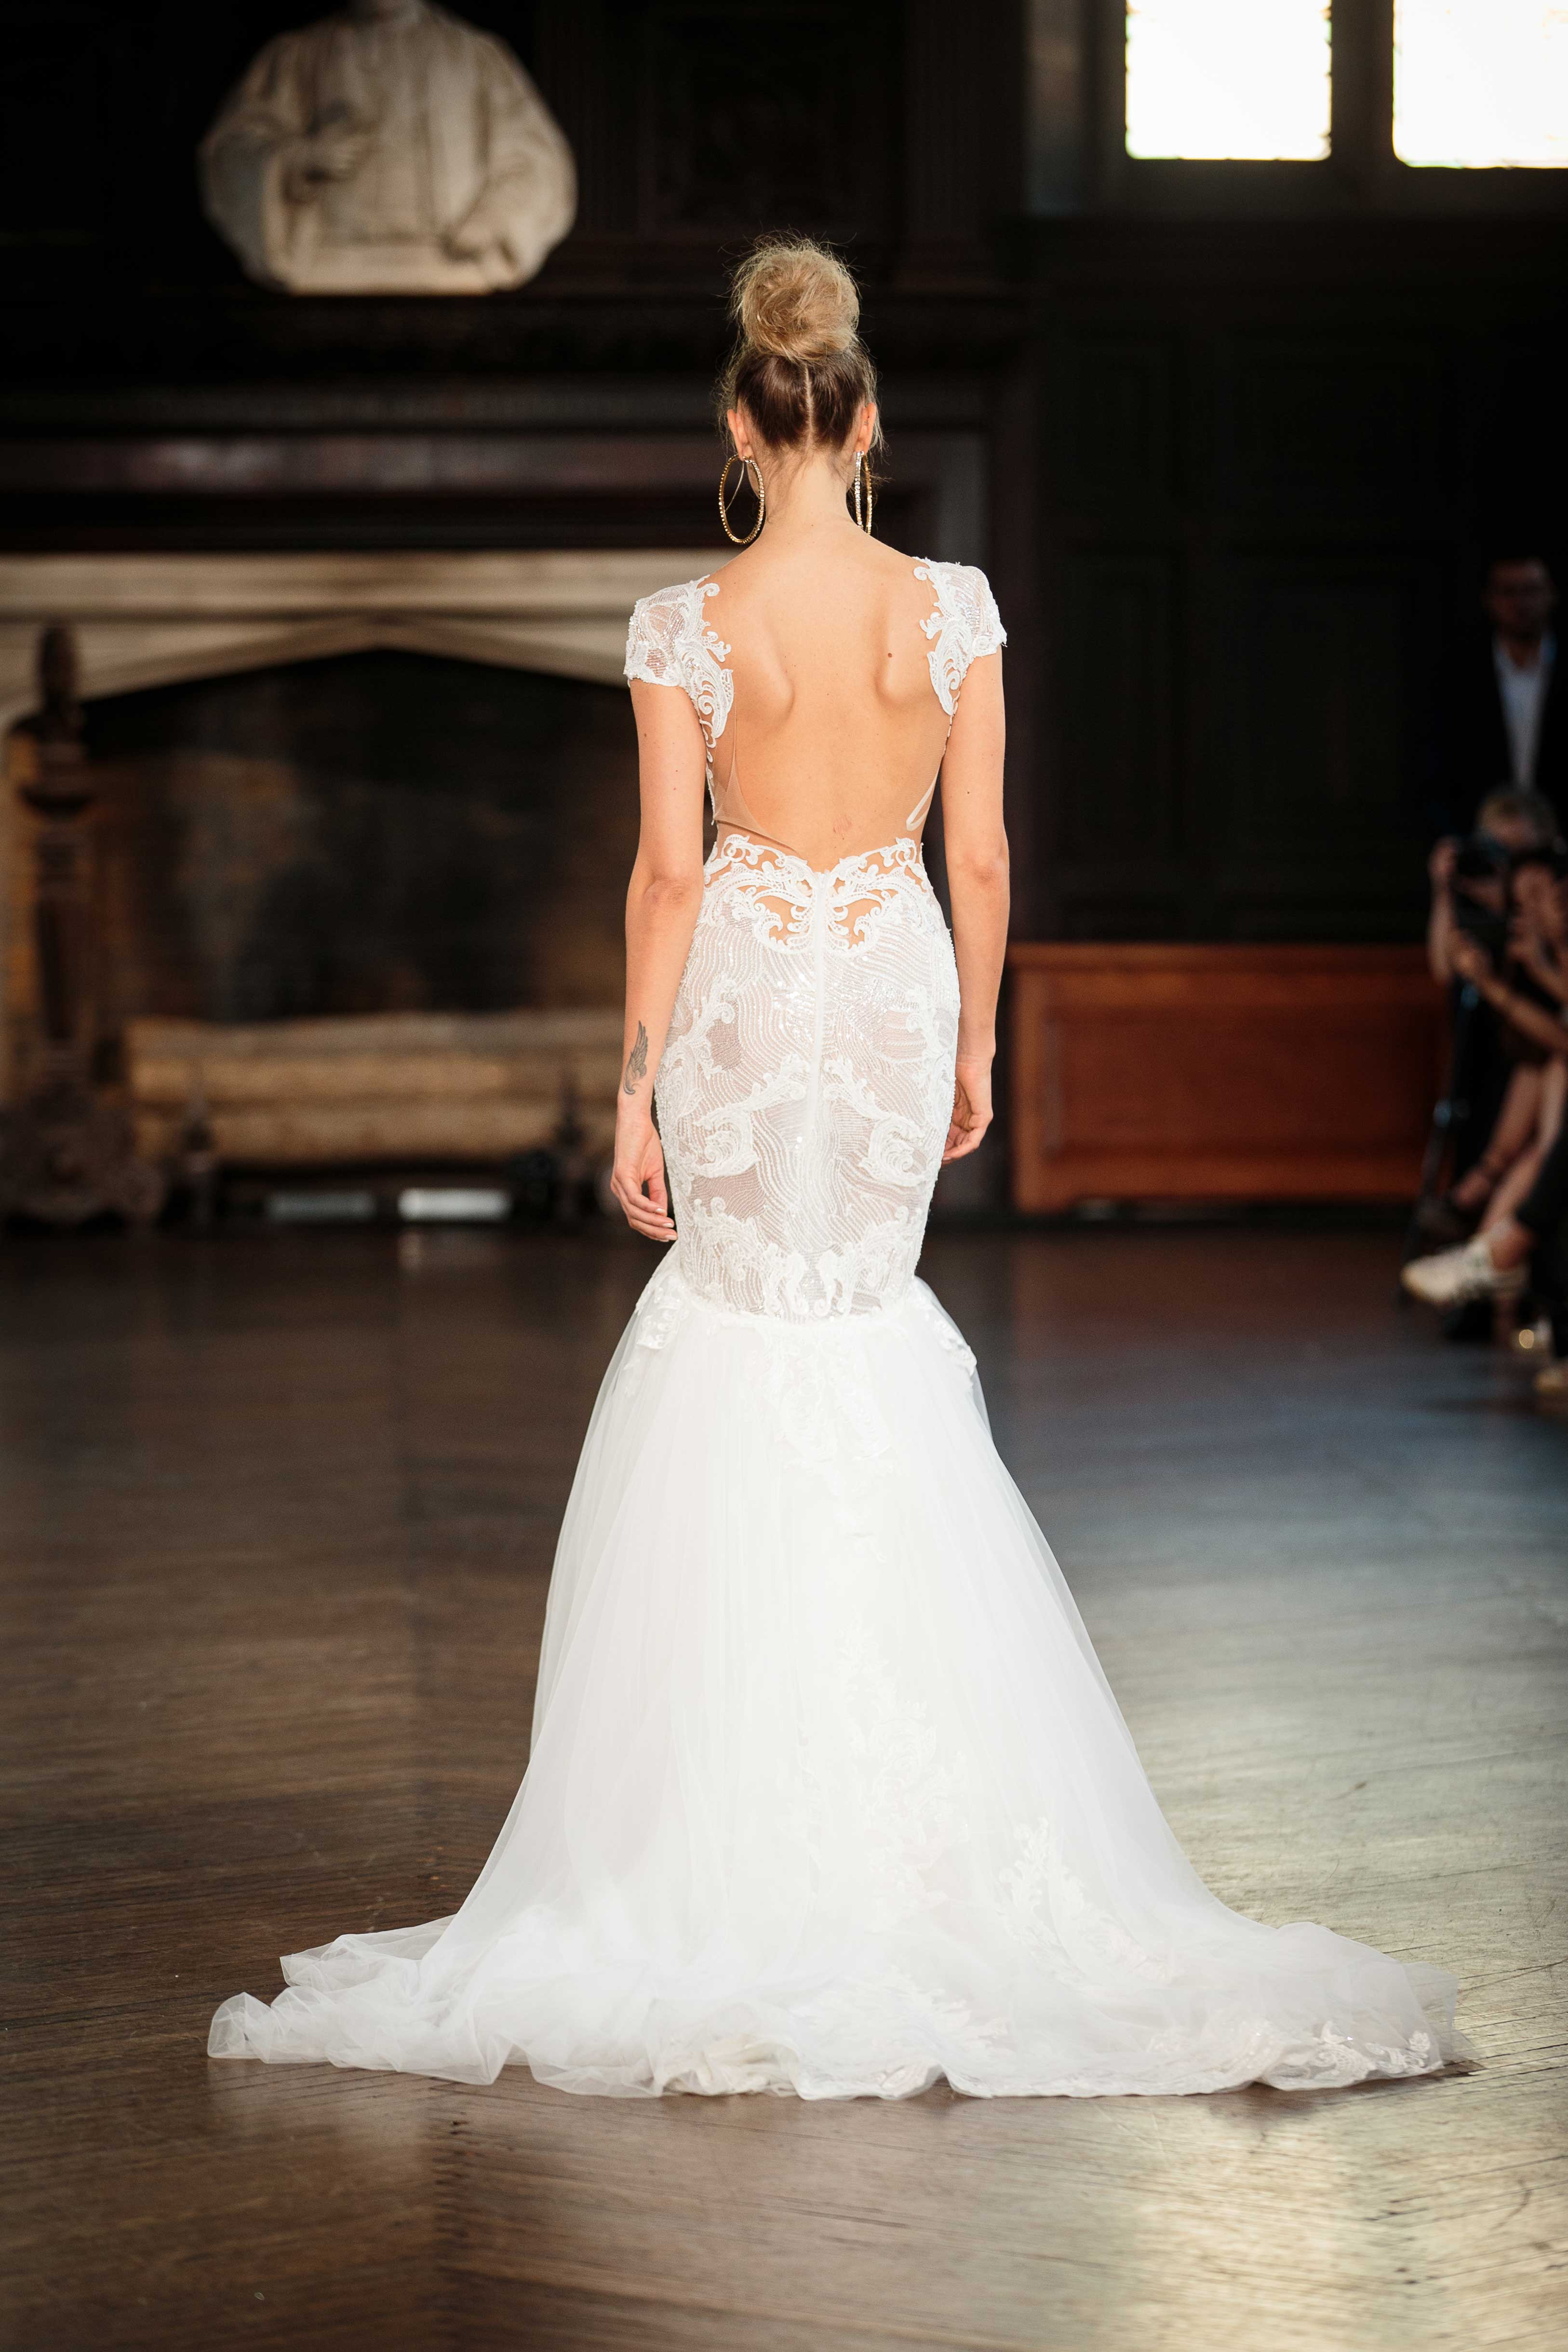 Wedding Dresses with Long Trains Inspired by The Cheetah Girls Star ...